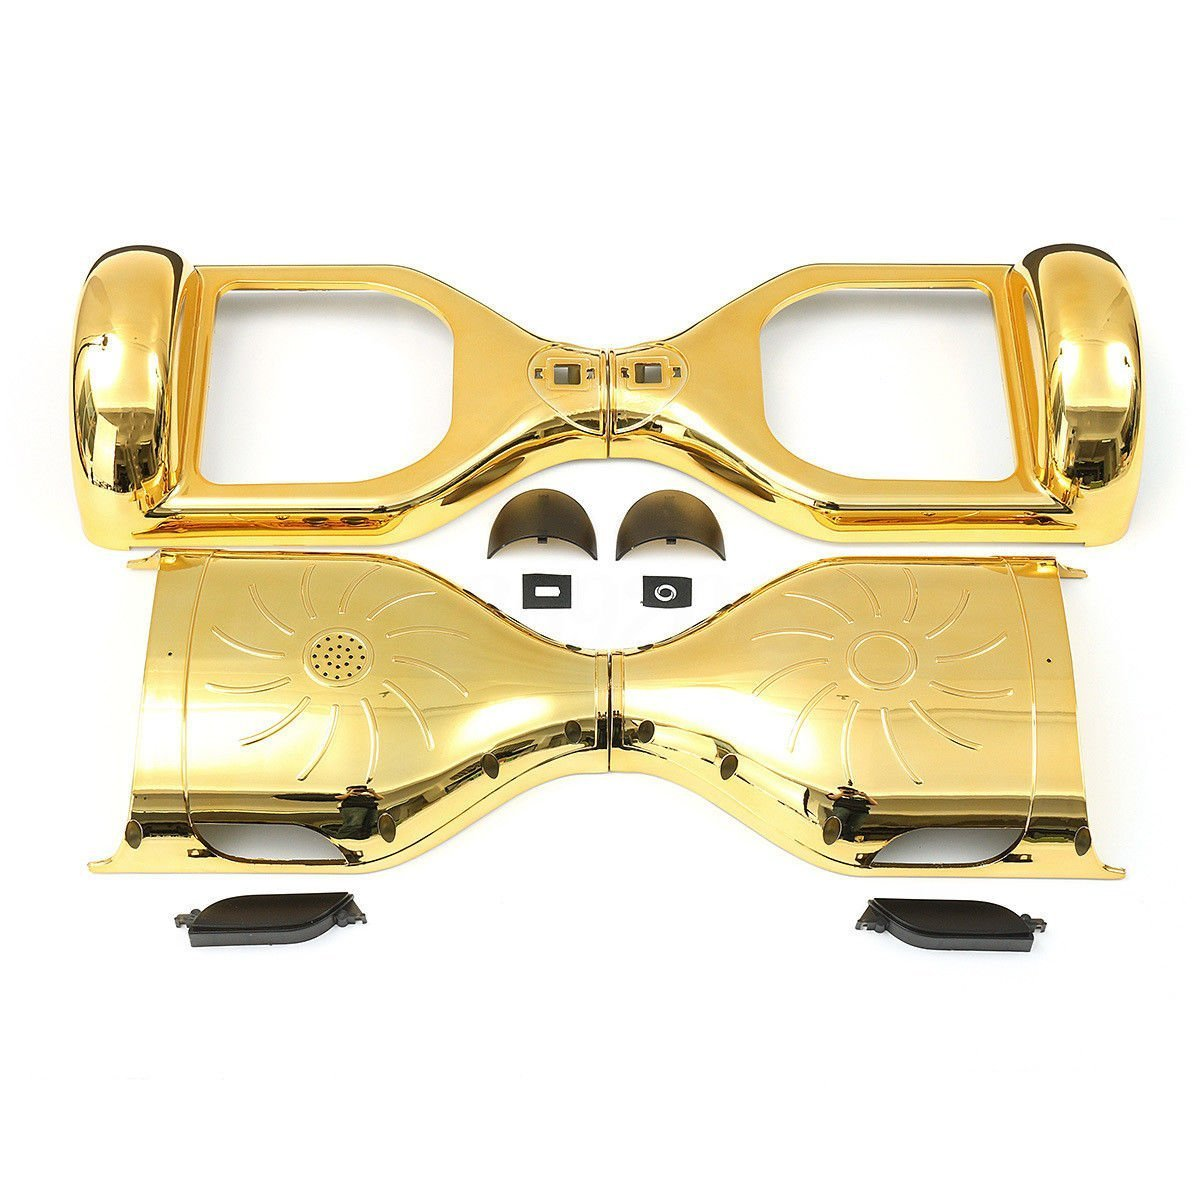 SHINEFUTURE 6.5'' Two Wheel Electric Self Balancing Scooter Outer Shell Cover Replacement DIY (gold)